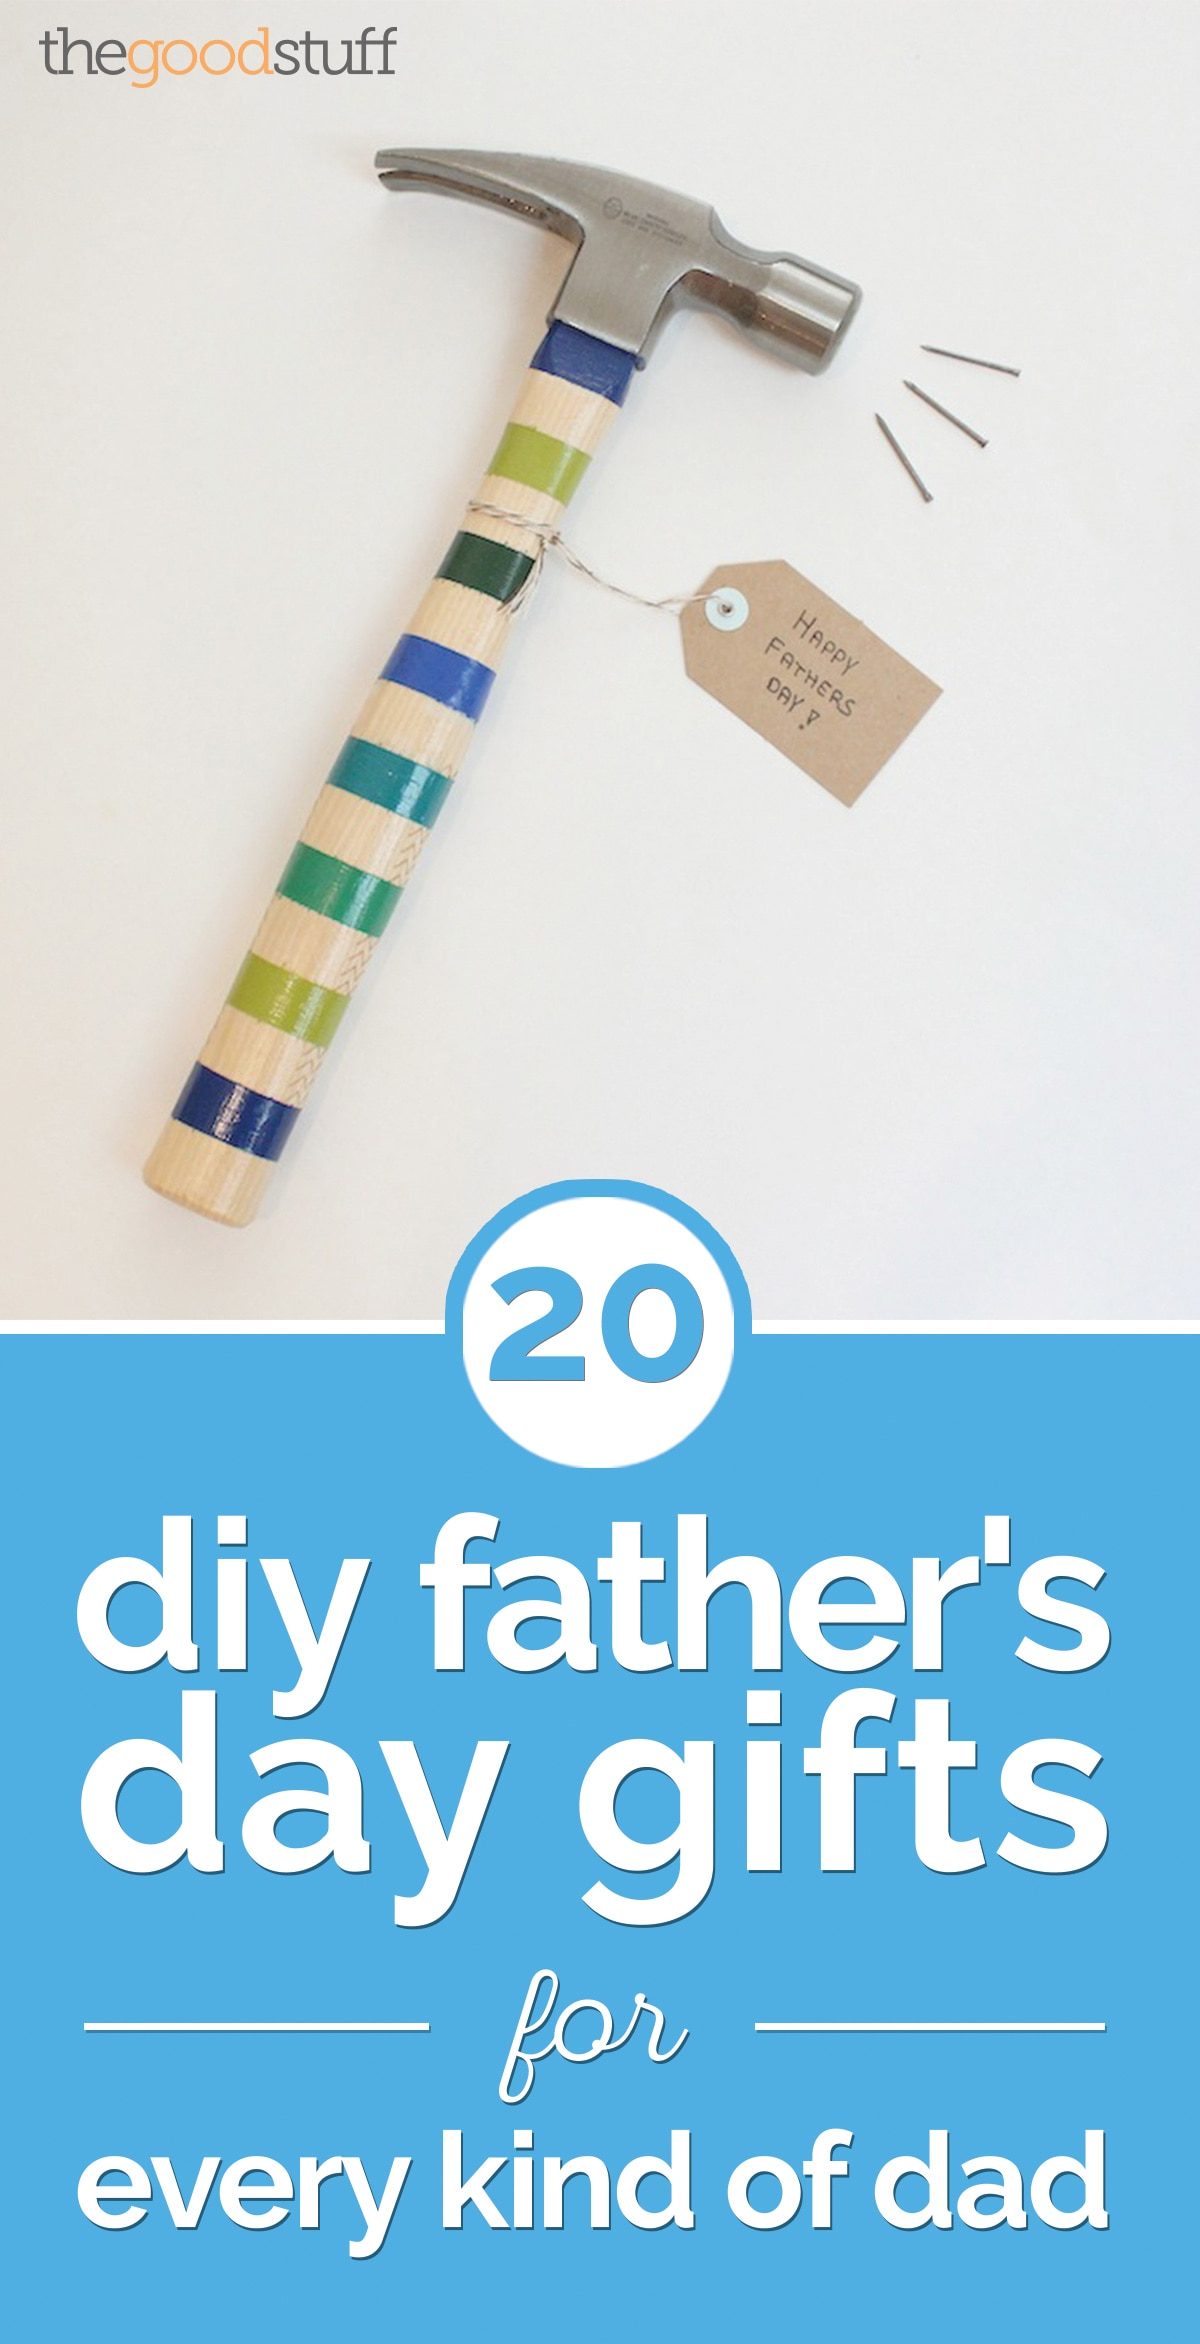 20 DIY Father's Day Gifts for Every Kind of Dad | thegoodstuff